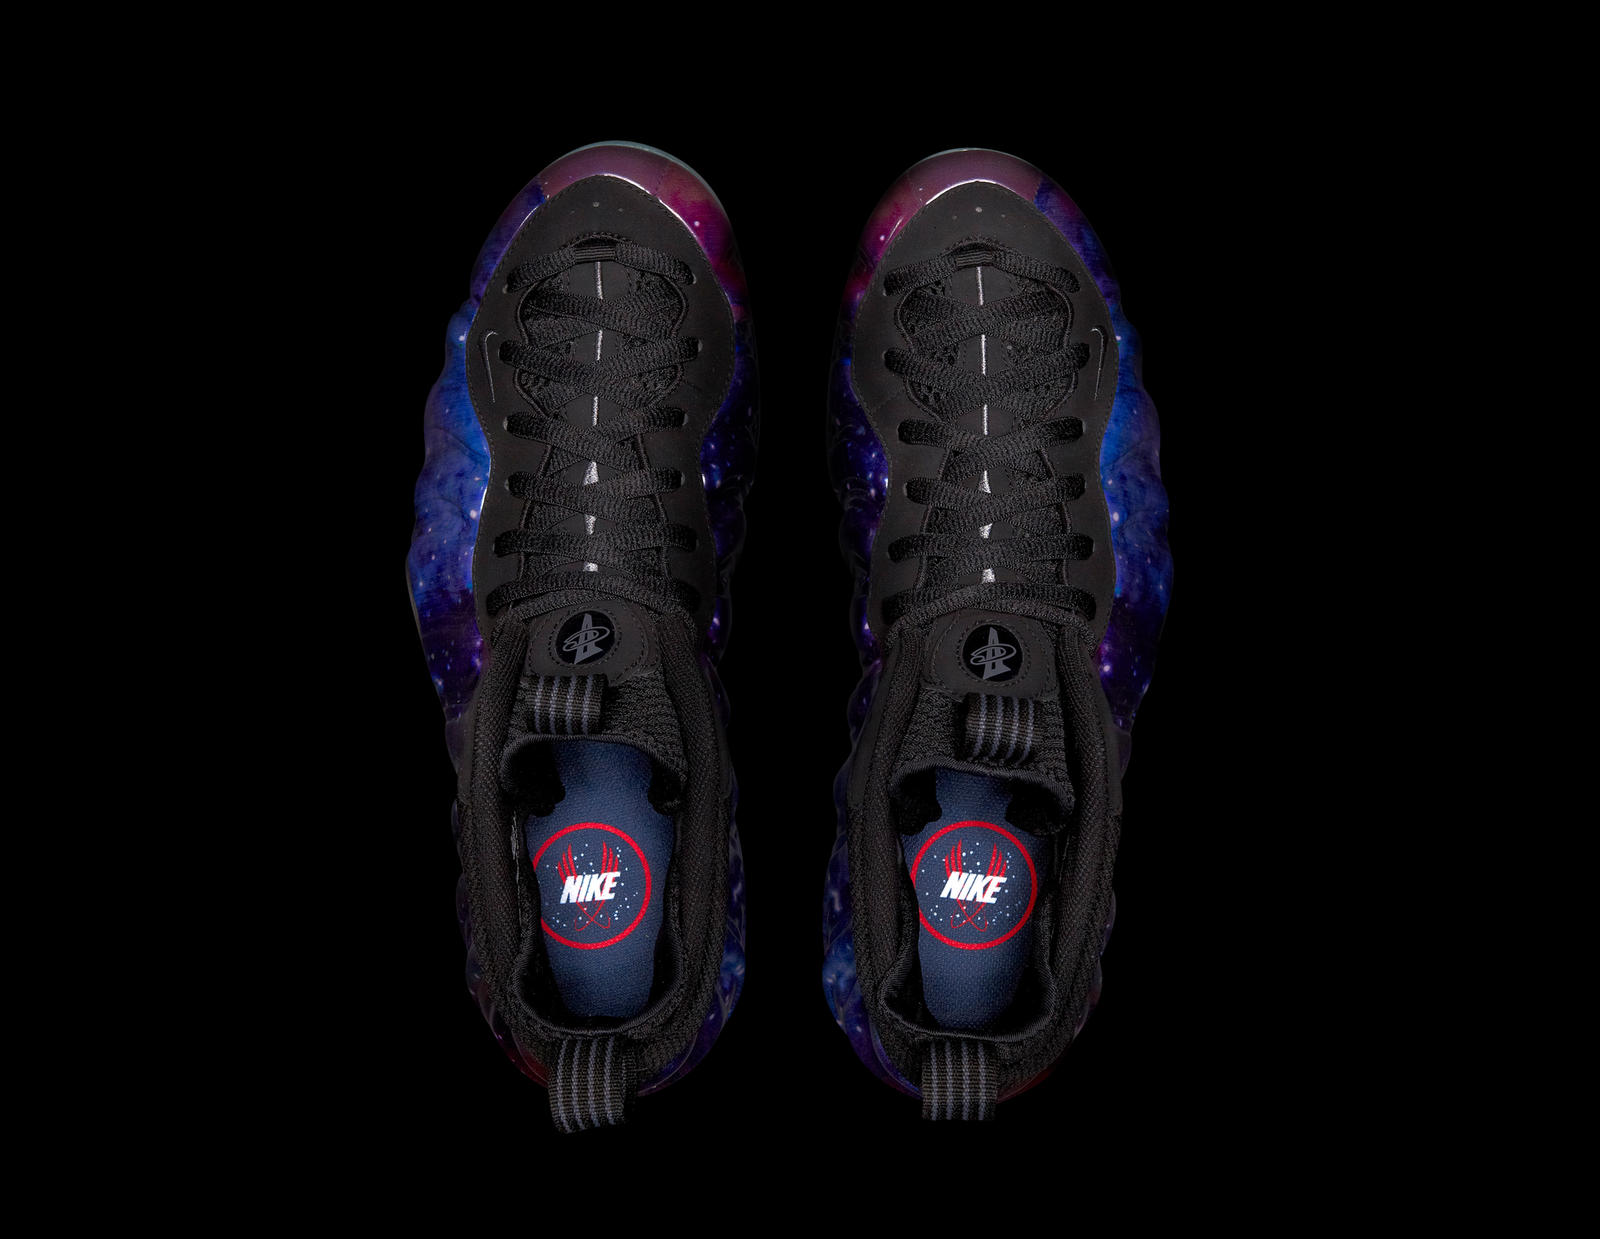 04f7550509fe44 Space exploration inspires new Nike Sportswear collection - Nike News